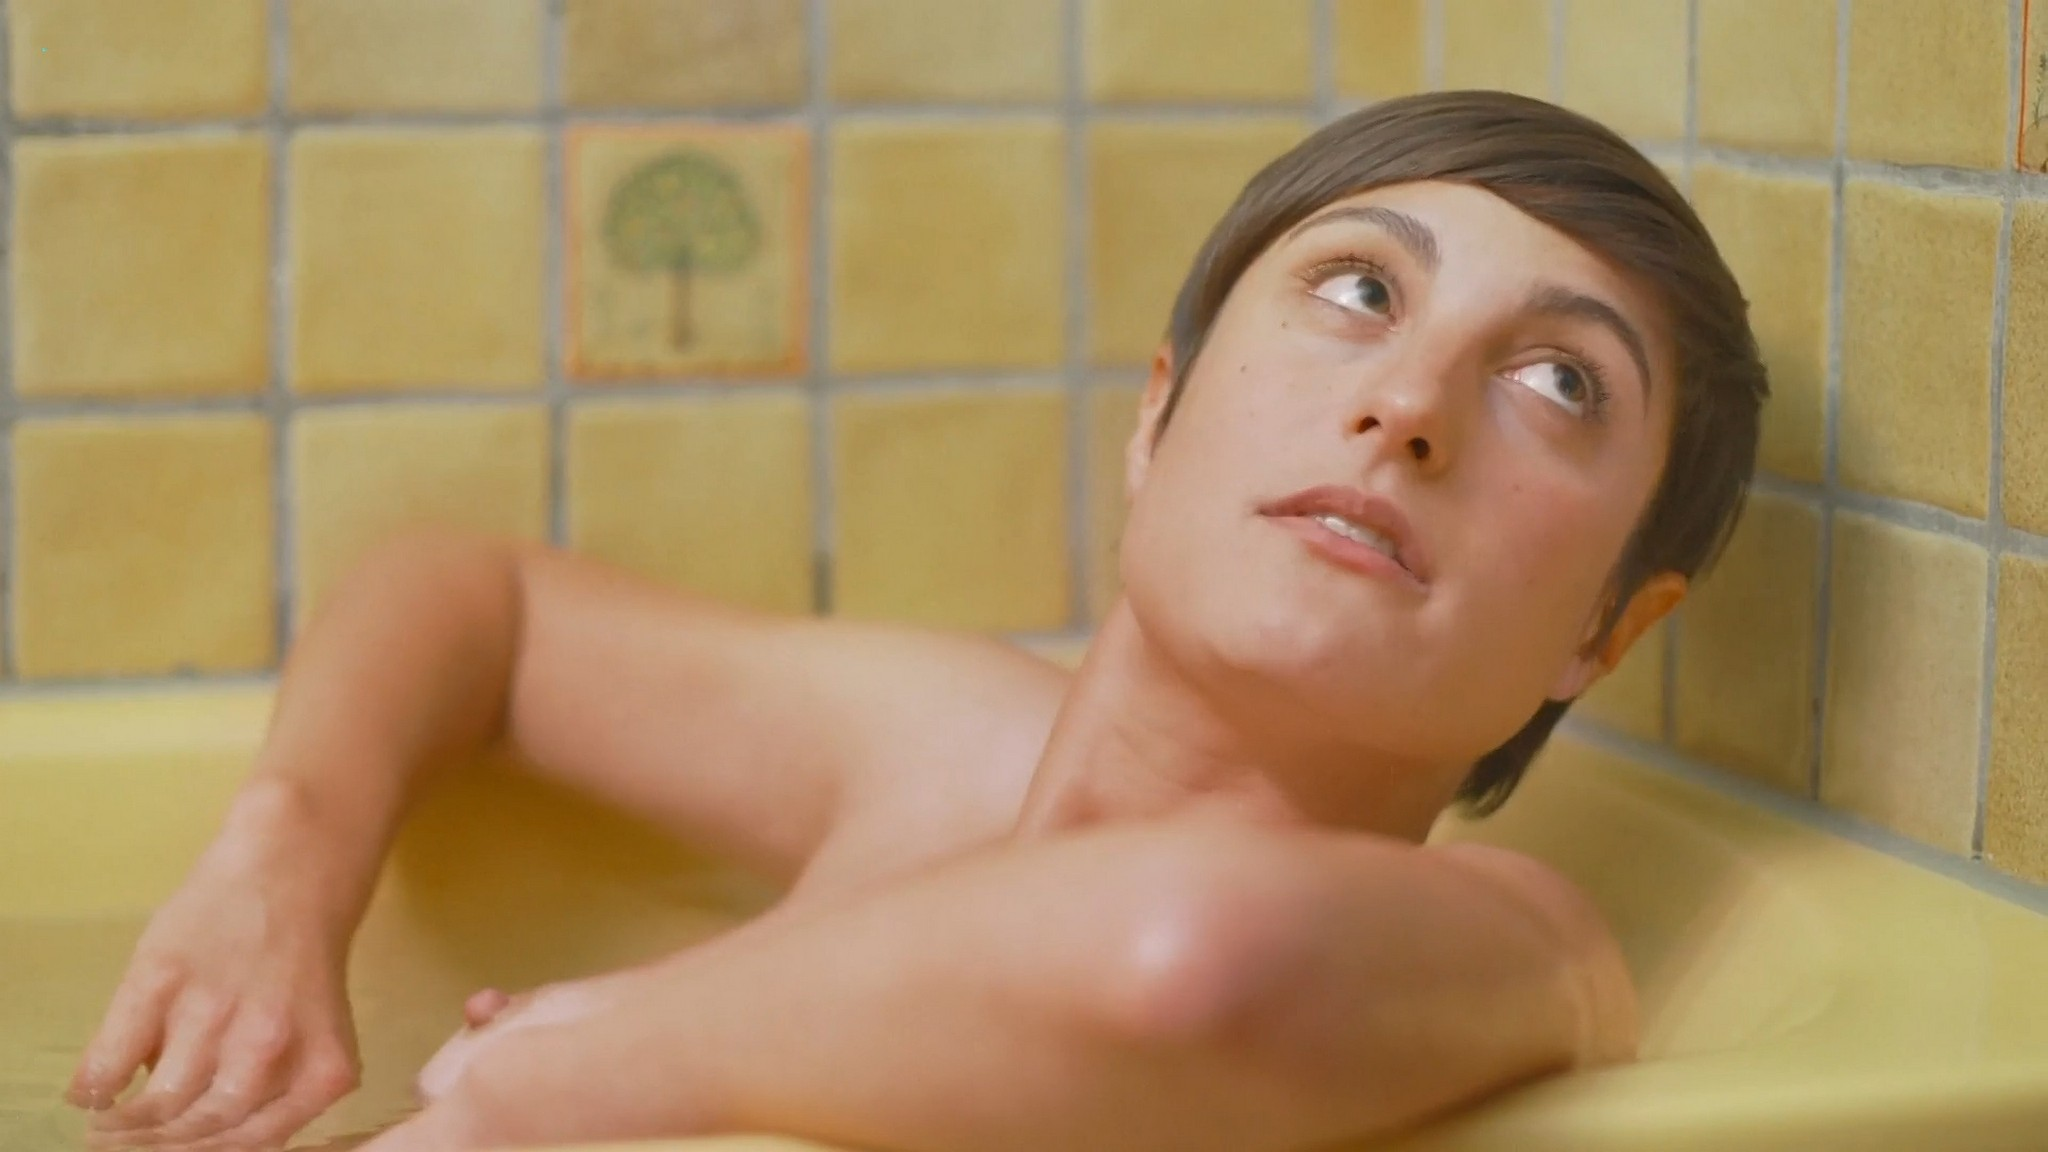 Carole Le Page nude full frontal Sophie Letourneur Lolita Chammah nude too Les coquillettes FR 2012 1080p Web 9